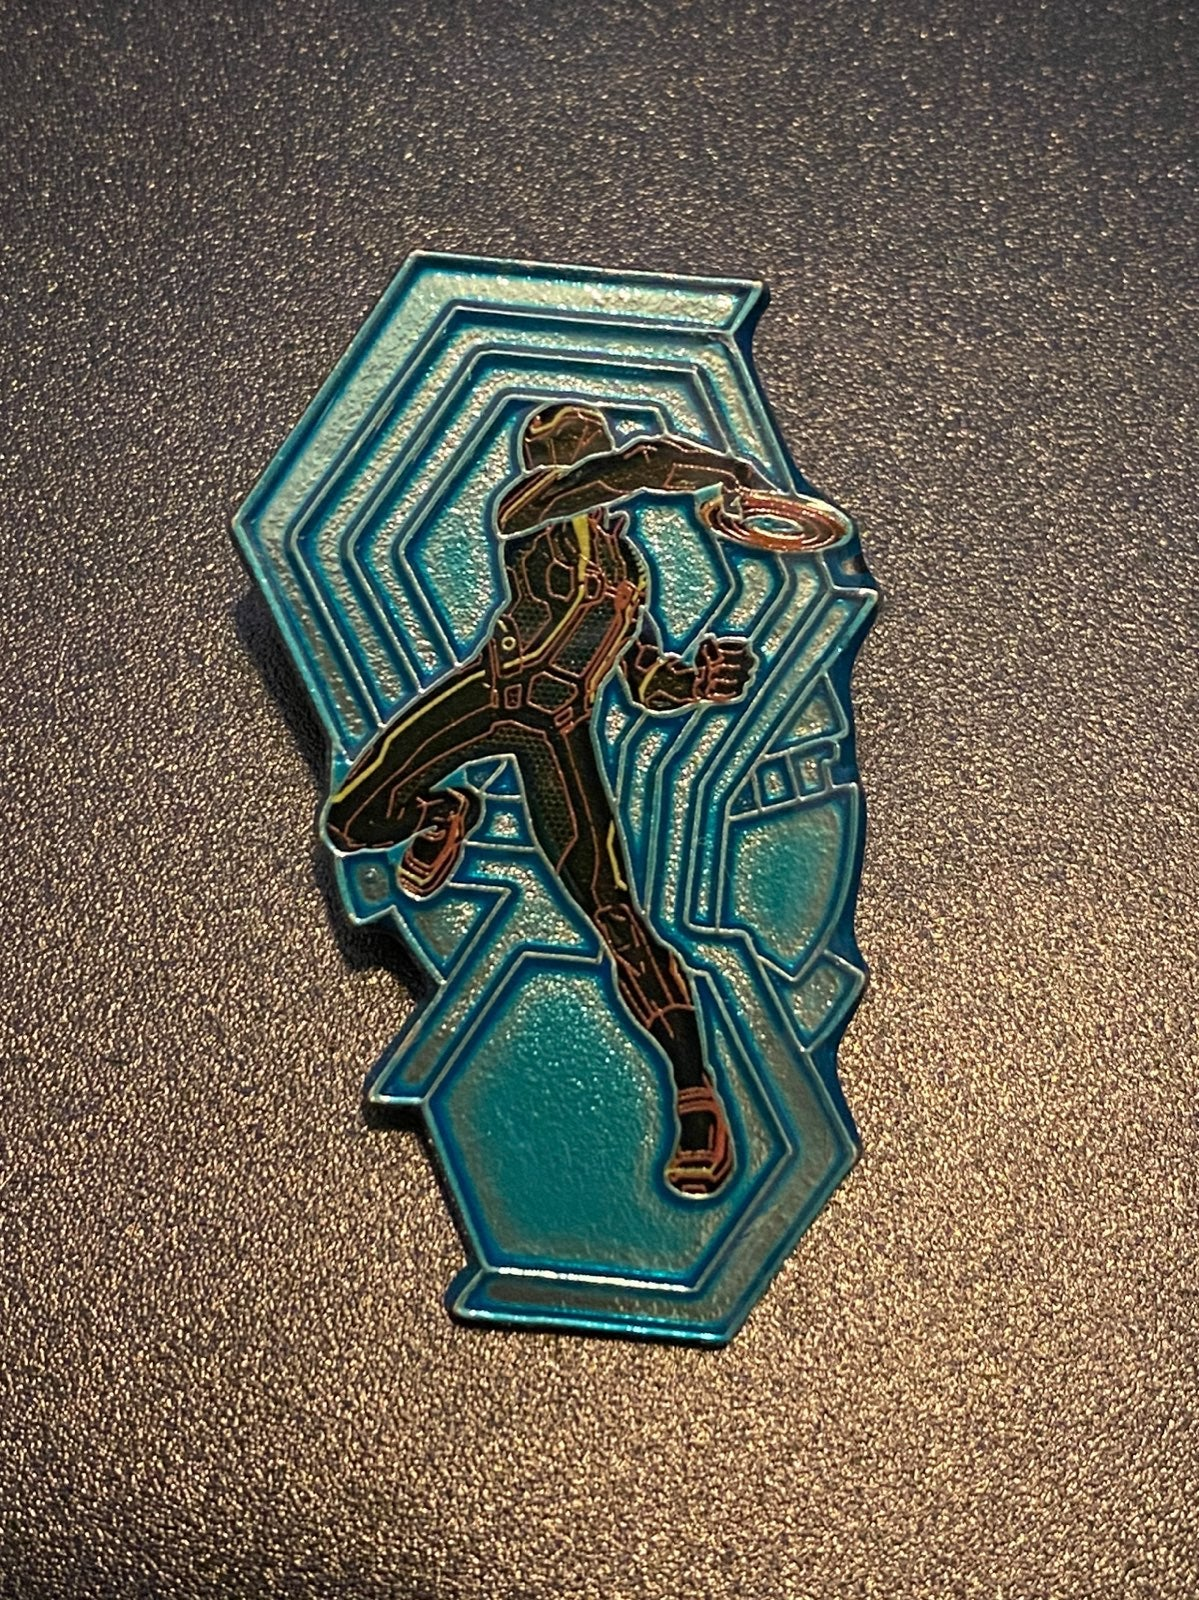 Disney Tron Mystery Pin Chaser PP